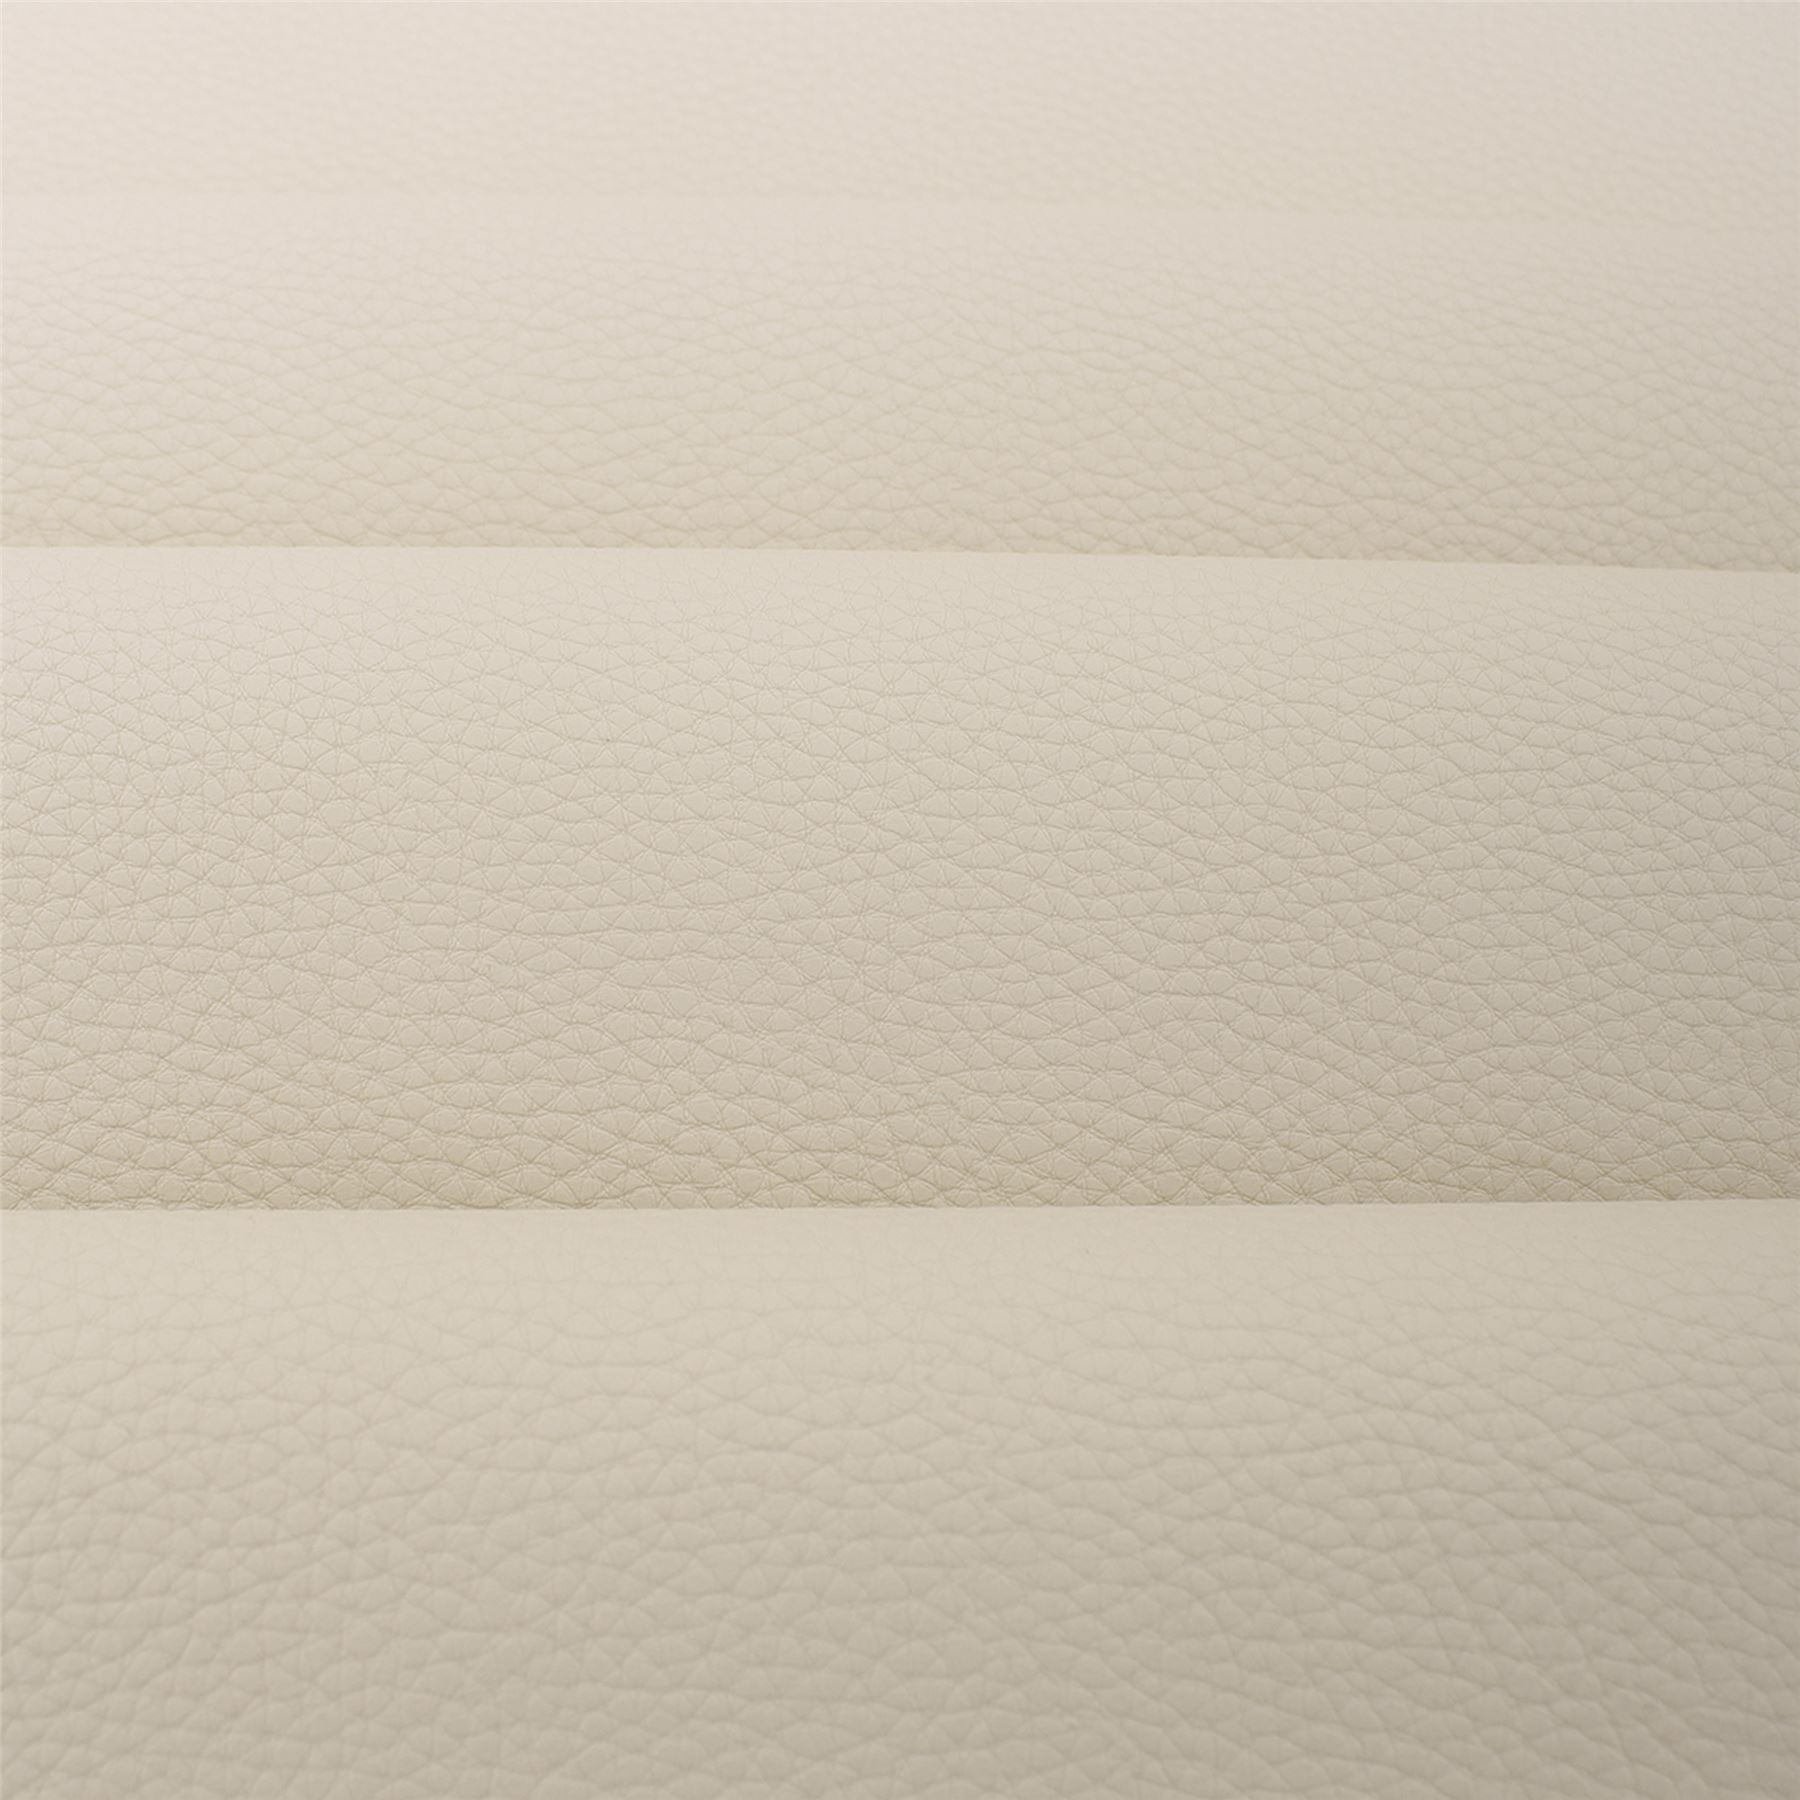 Nova-Faux-Leatherette-Artificial-Leather-Heavy-Grain-Upholstery-Vehicle-Fabric thumbnail 13